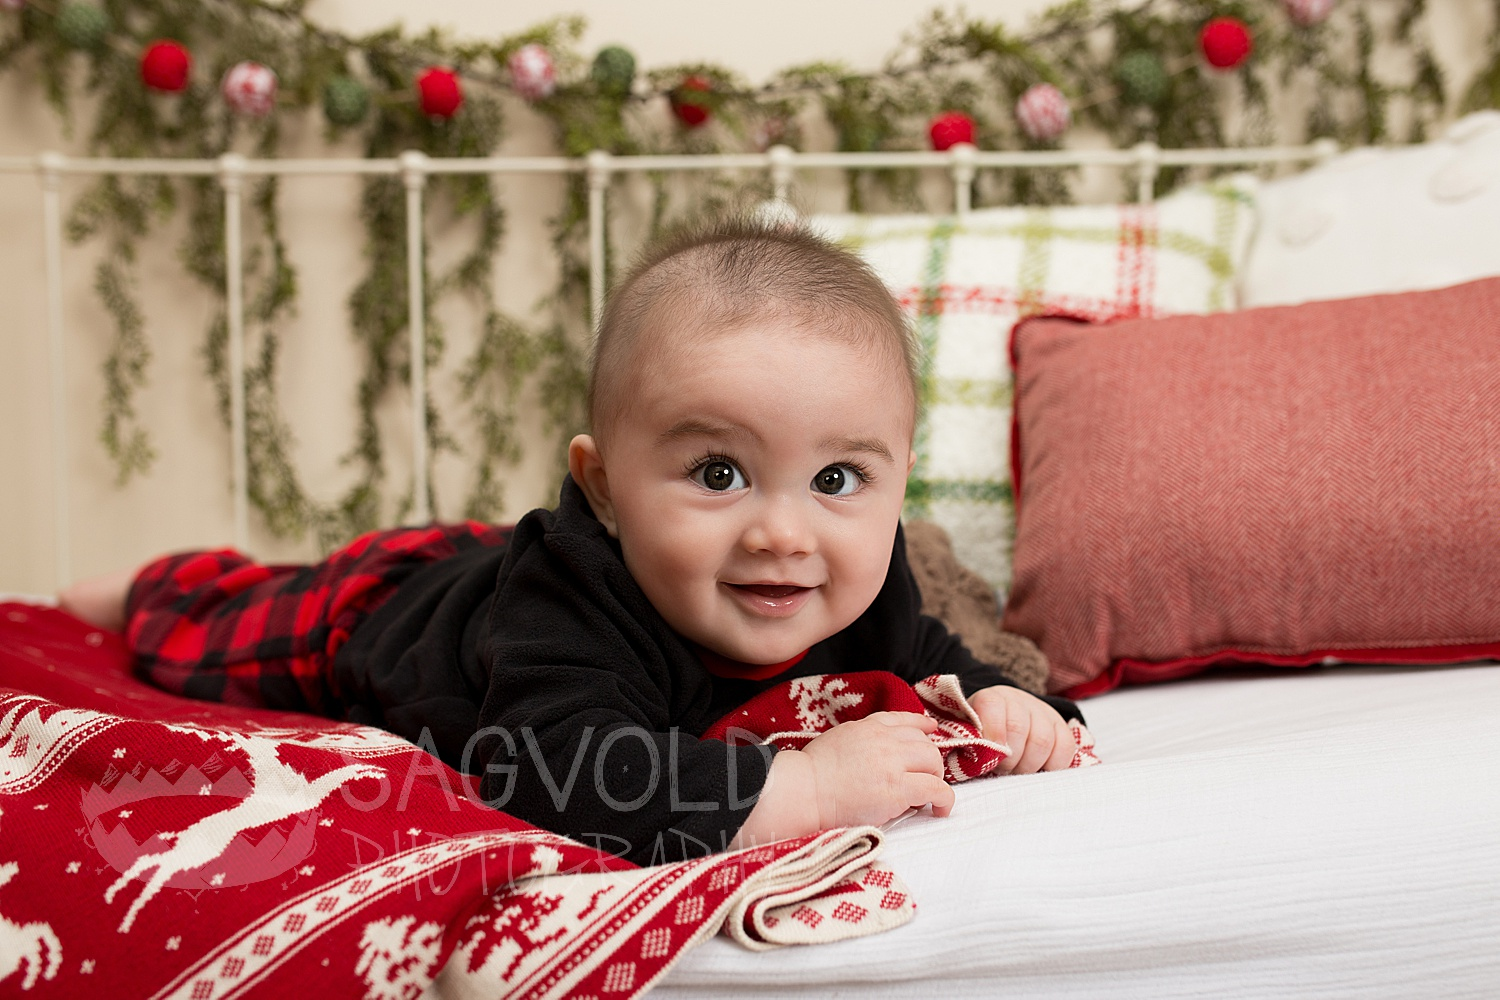 Baby holiday picture Fargo ND baby photographer Janna Sagvold Photography